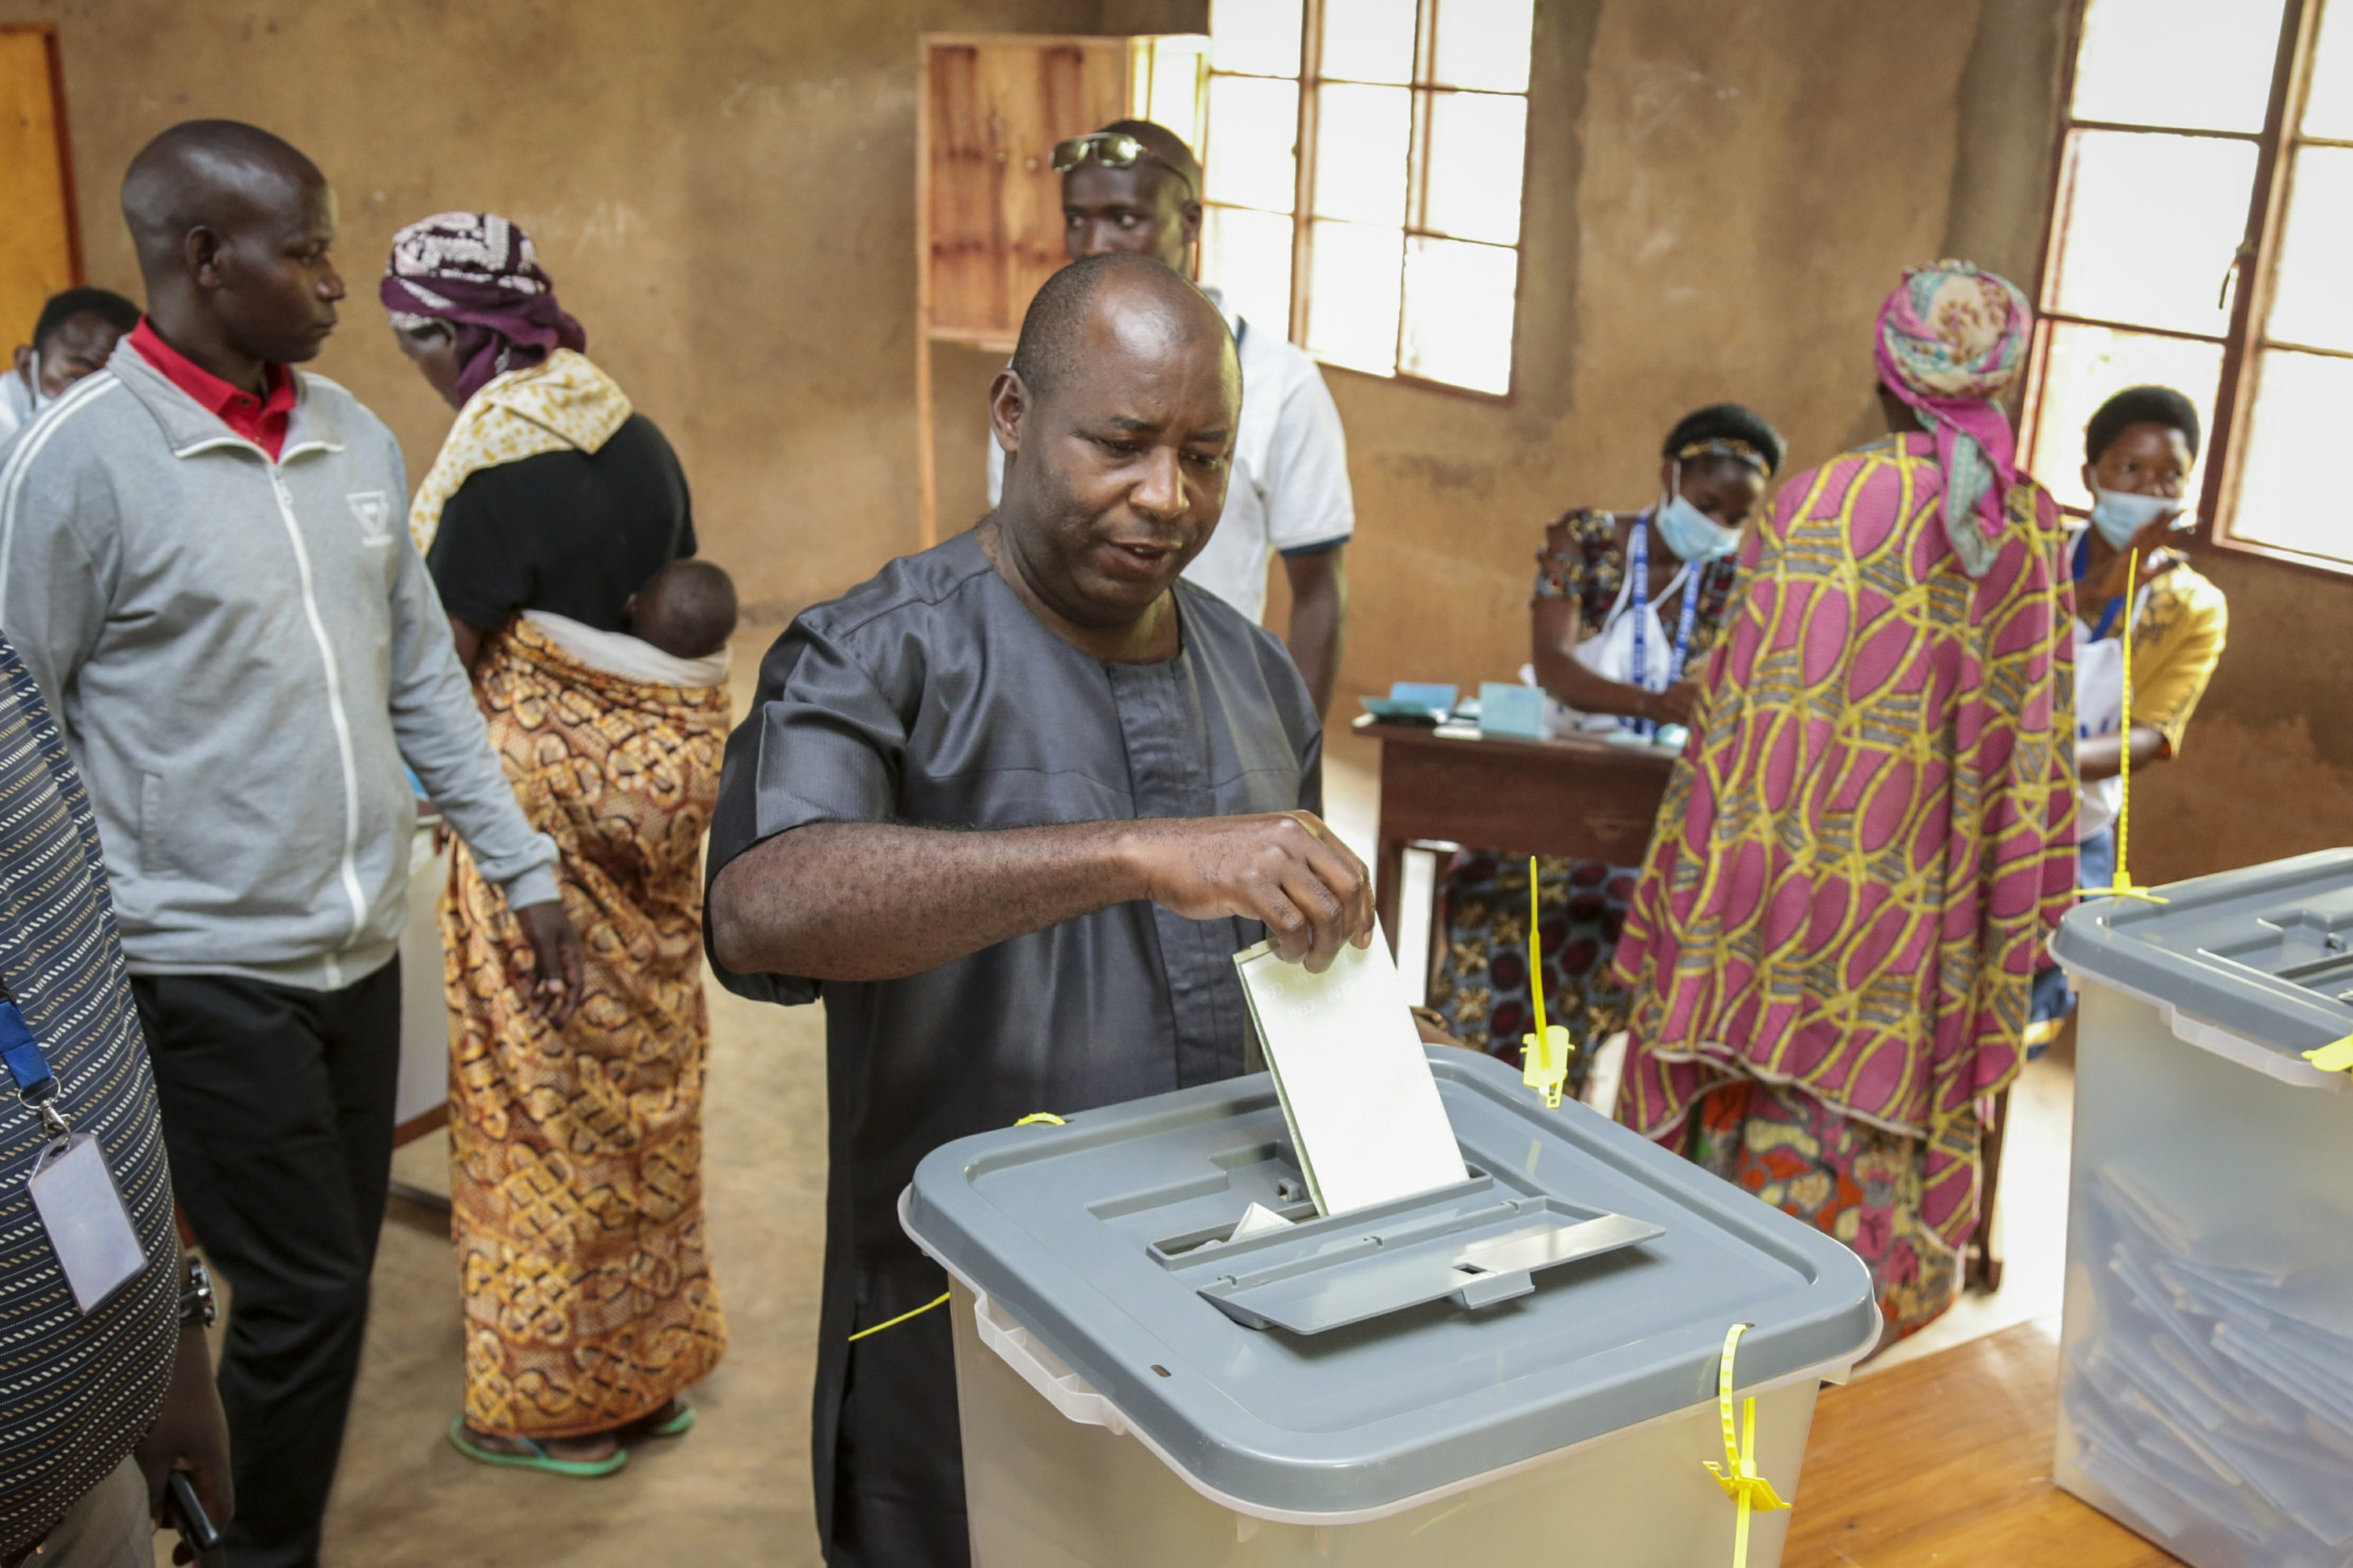 Ruling party's candidate wins Burundi's presidential poll